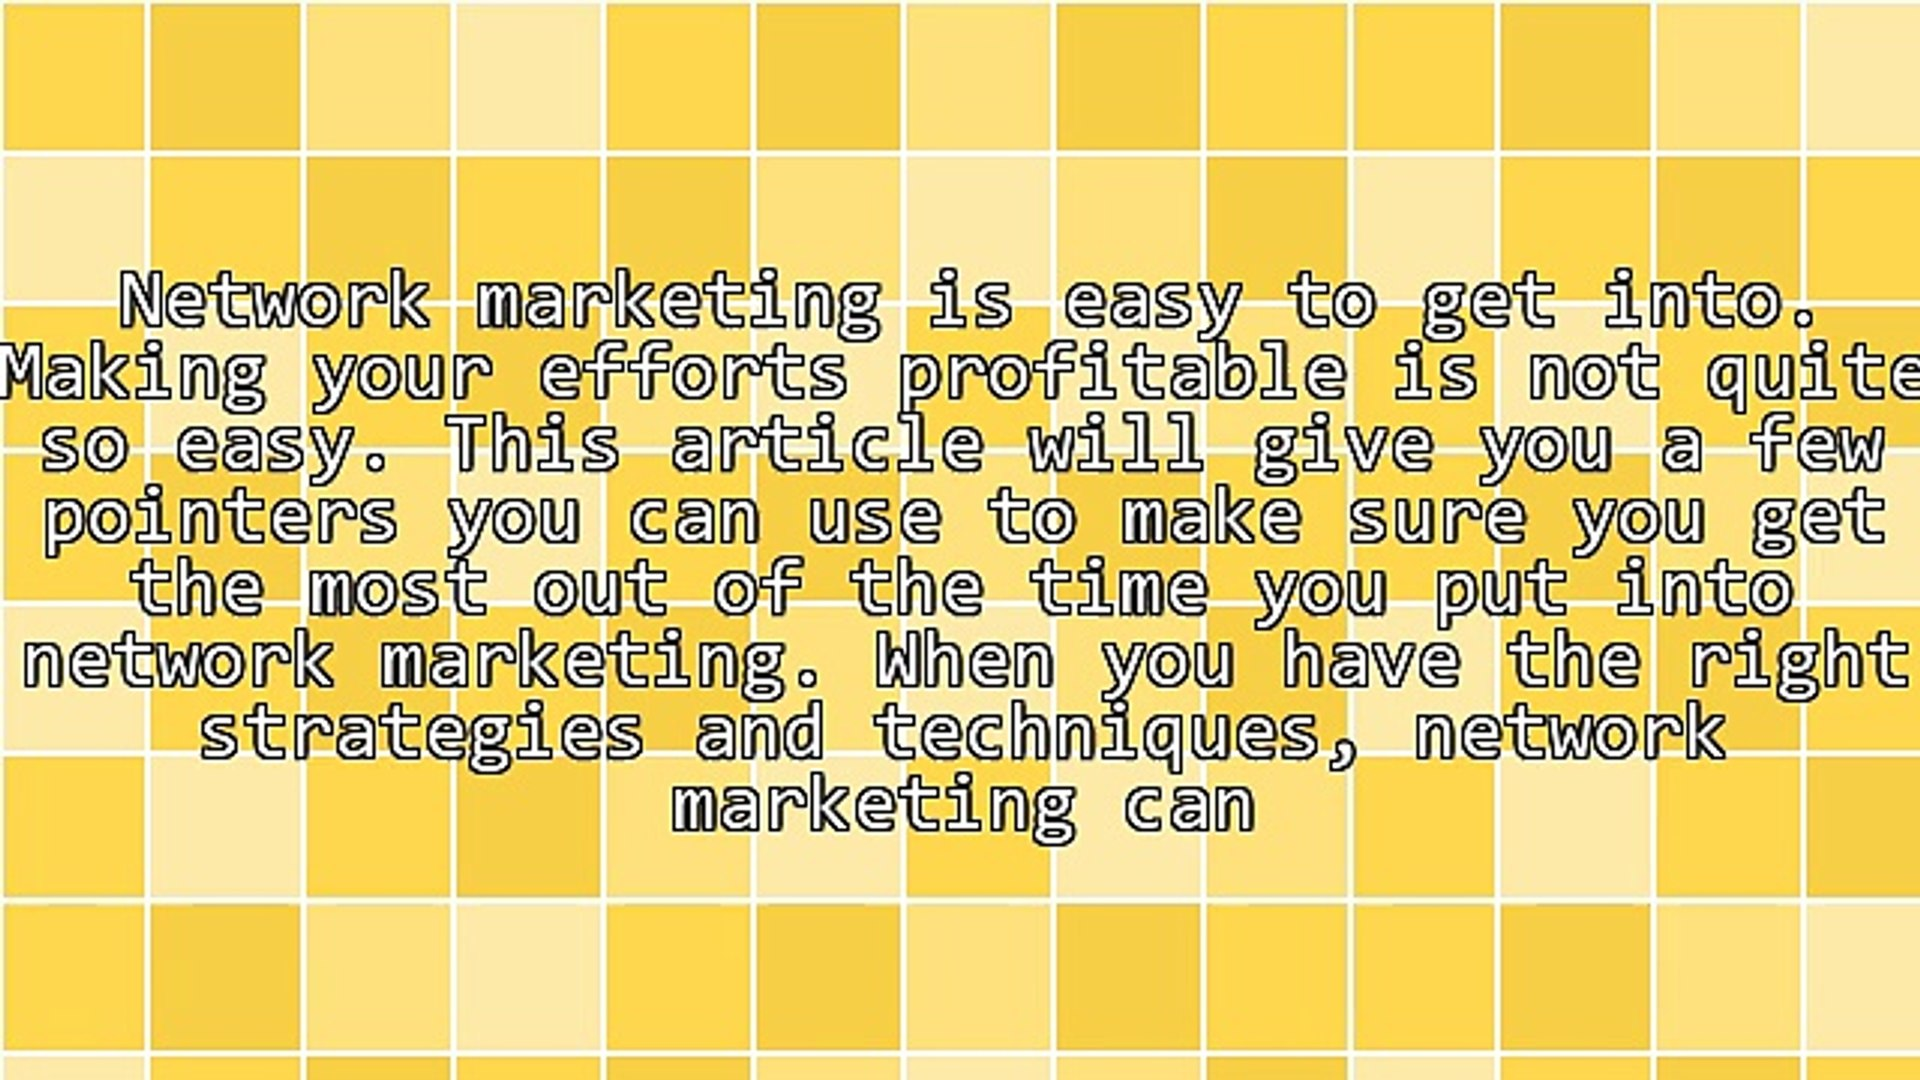 Tips You Can't Miss For Successful Network Marketing